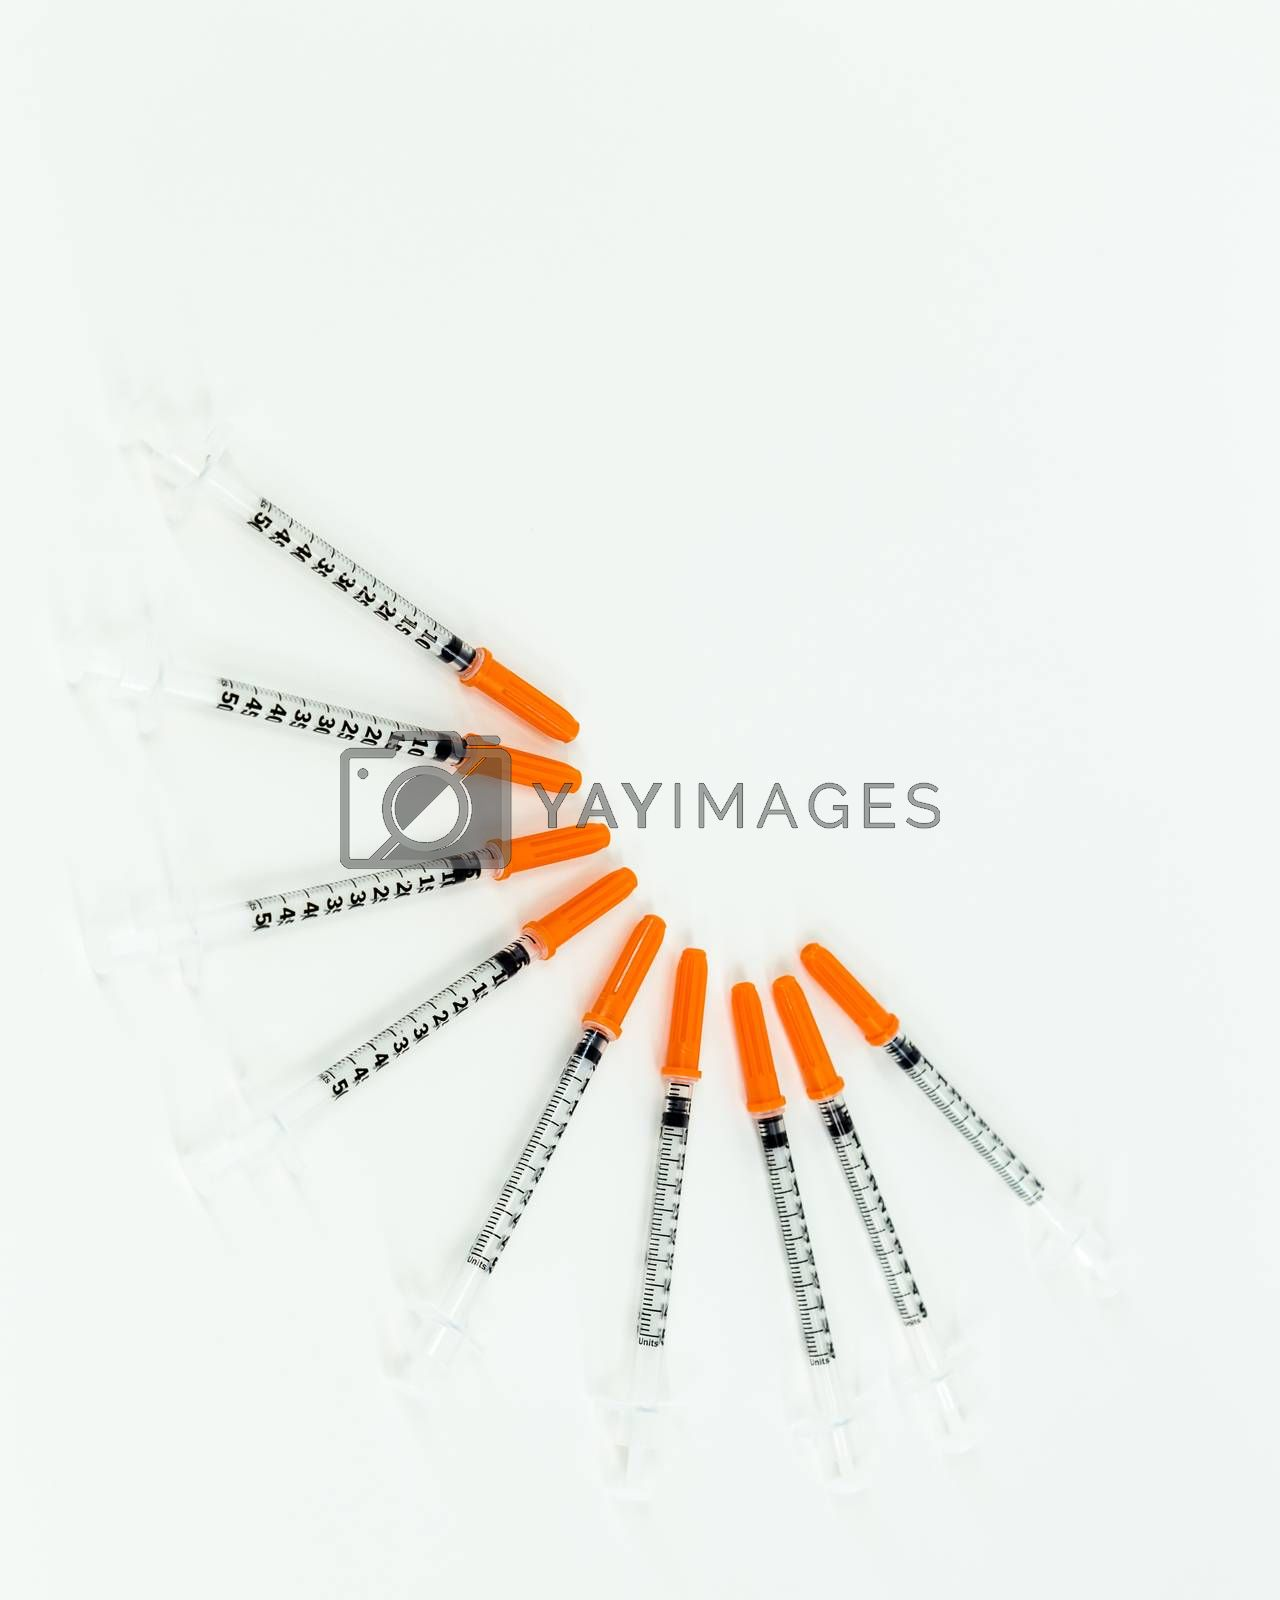 Royalty free image of Syringes fanned out by imagesbykenny